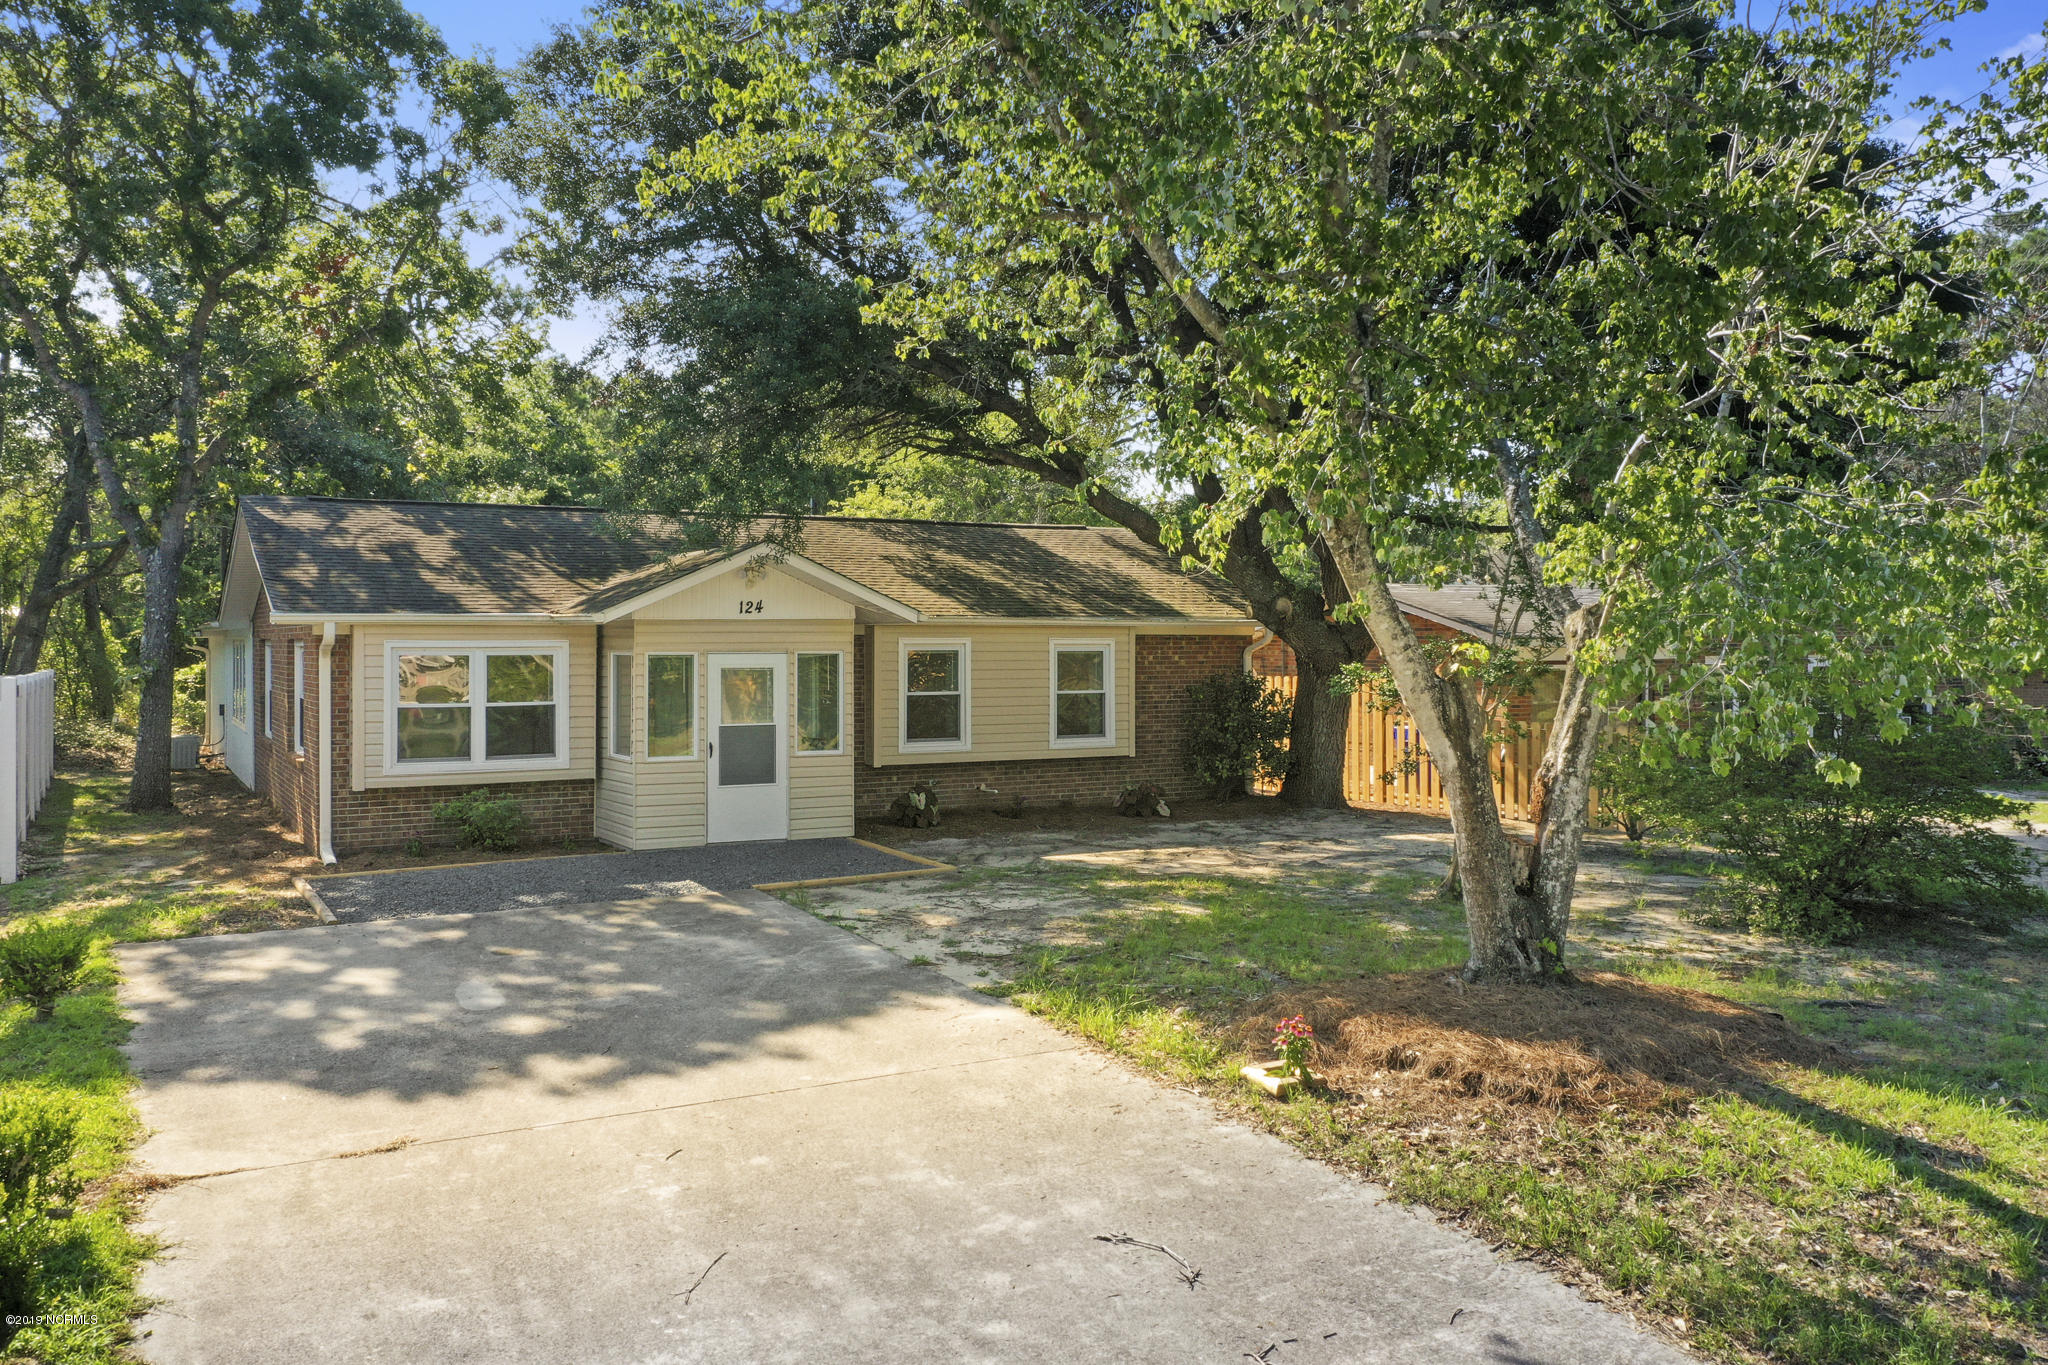 124 NE 38th Street Oak Island, NC 28465